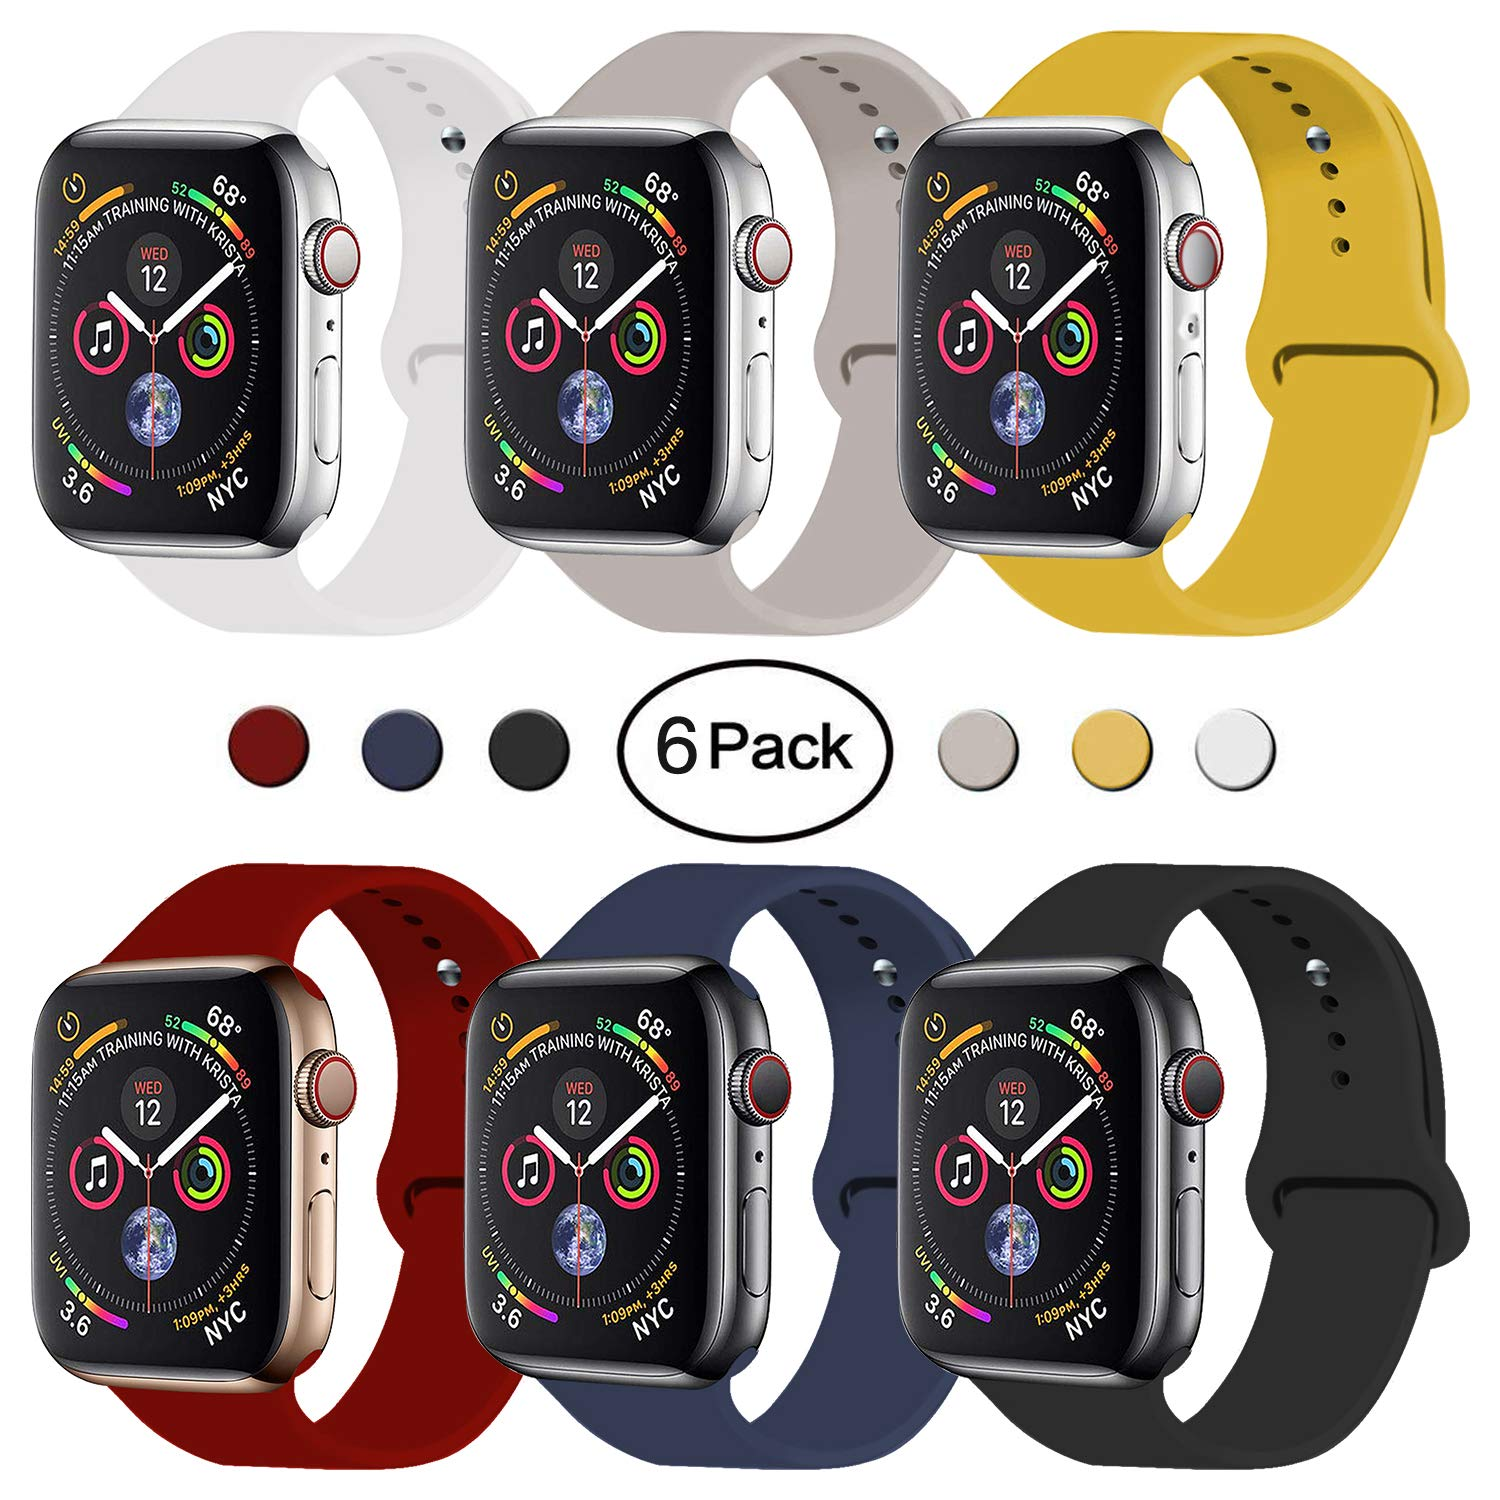 VATI Sport Band Compatible for Apple Watch Band 38mm 40mm, 6-Pack Soft Silicone Sport Strap Replacement Bands Compatible with 2018 iWatch Apple Watch Series 4/3/2/1, 38MM 40MM S/M by VATI